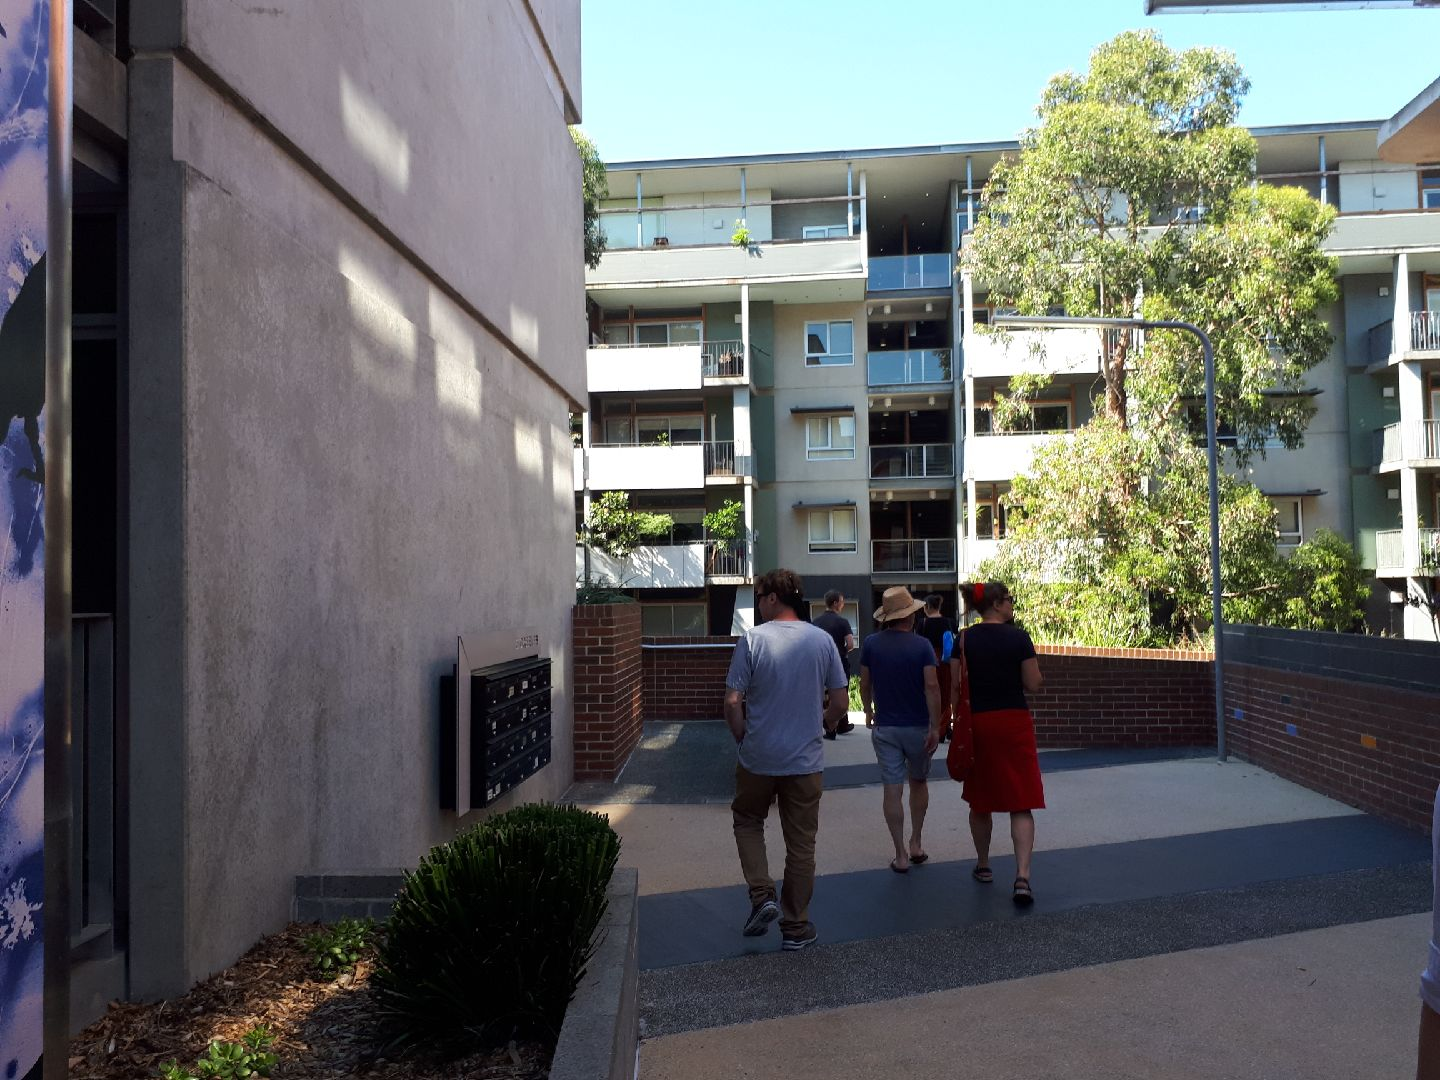 Site tour of Inkerman Oasis, St Kilda.